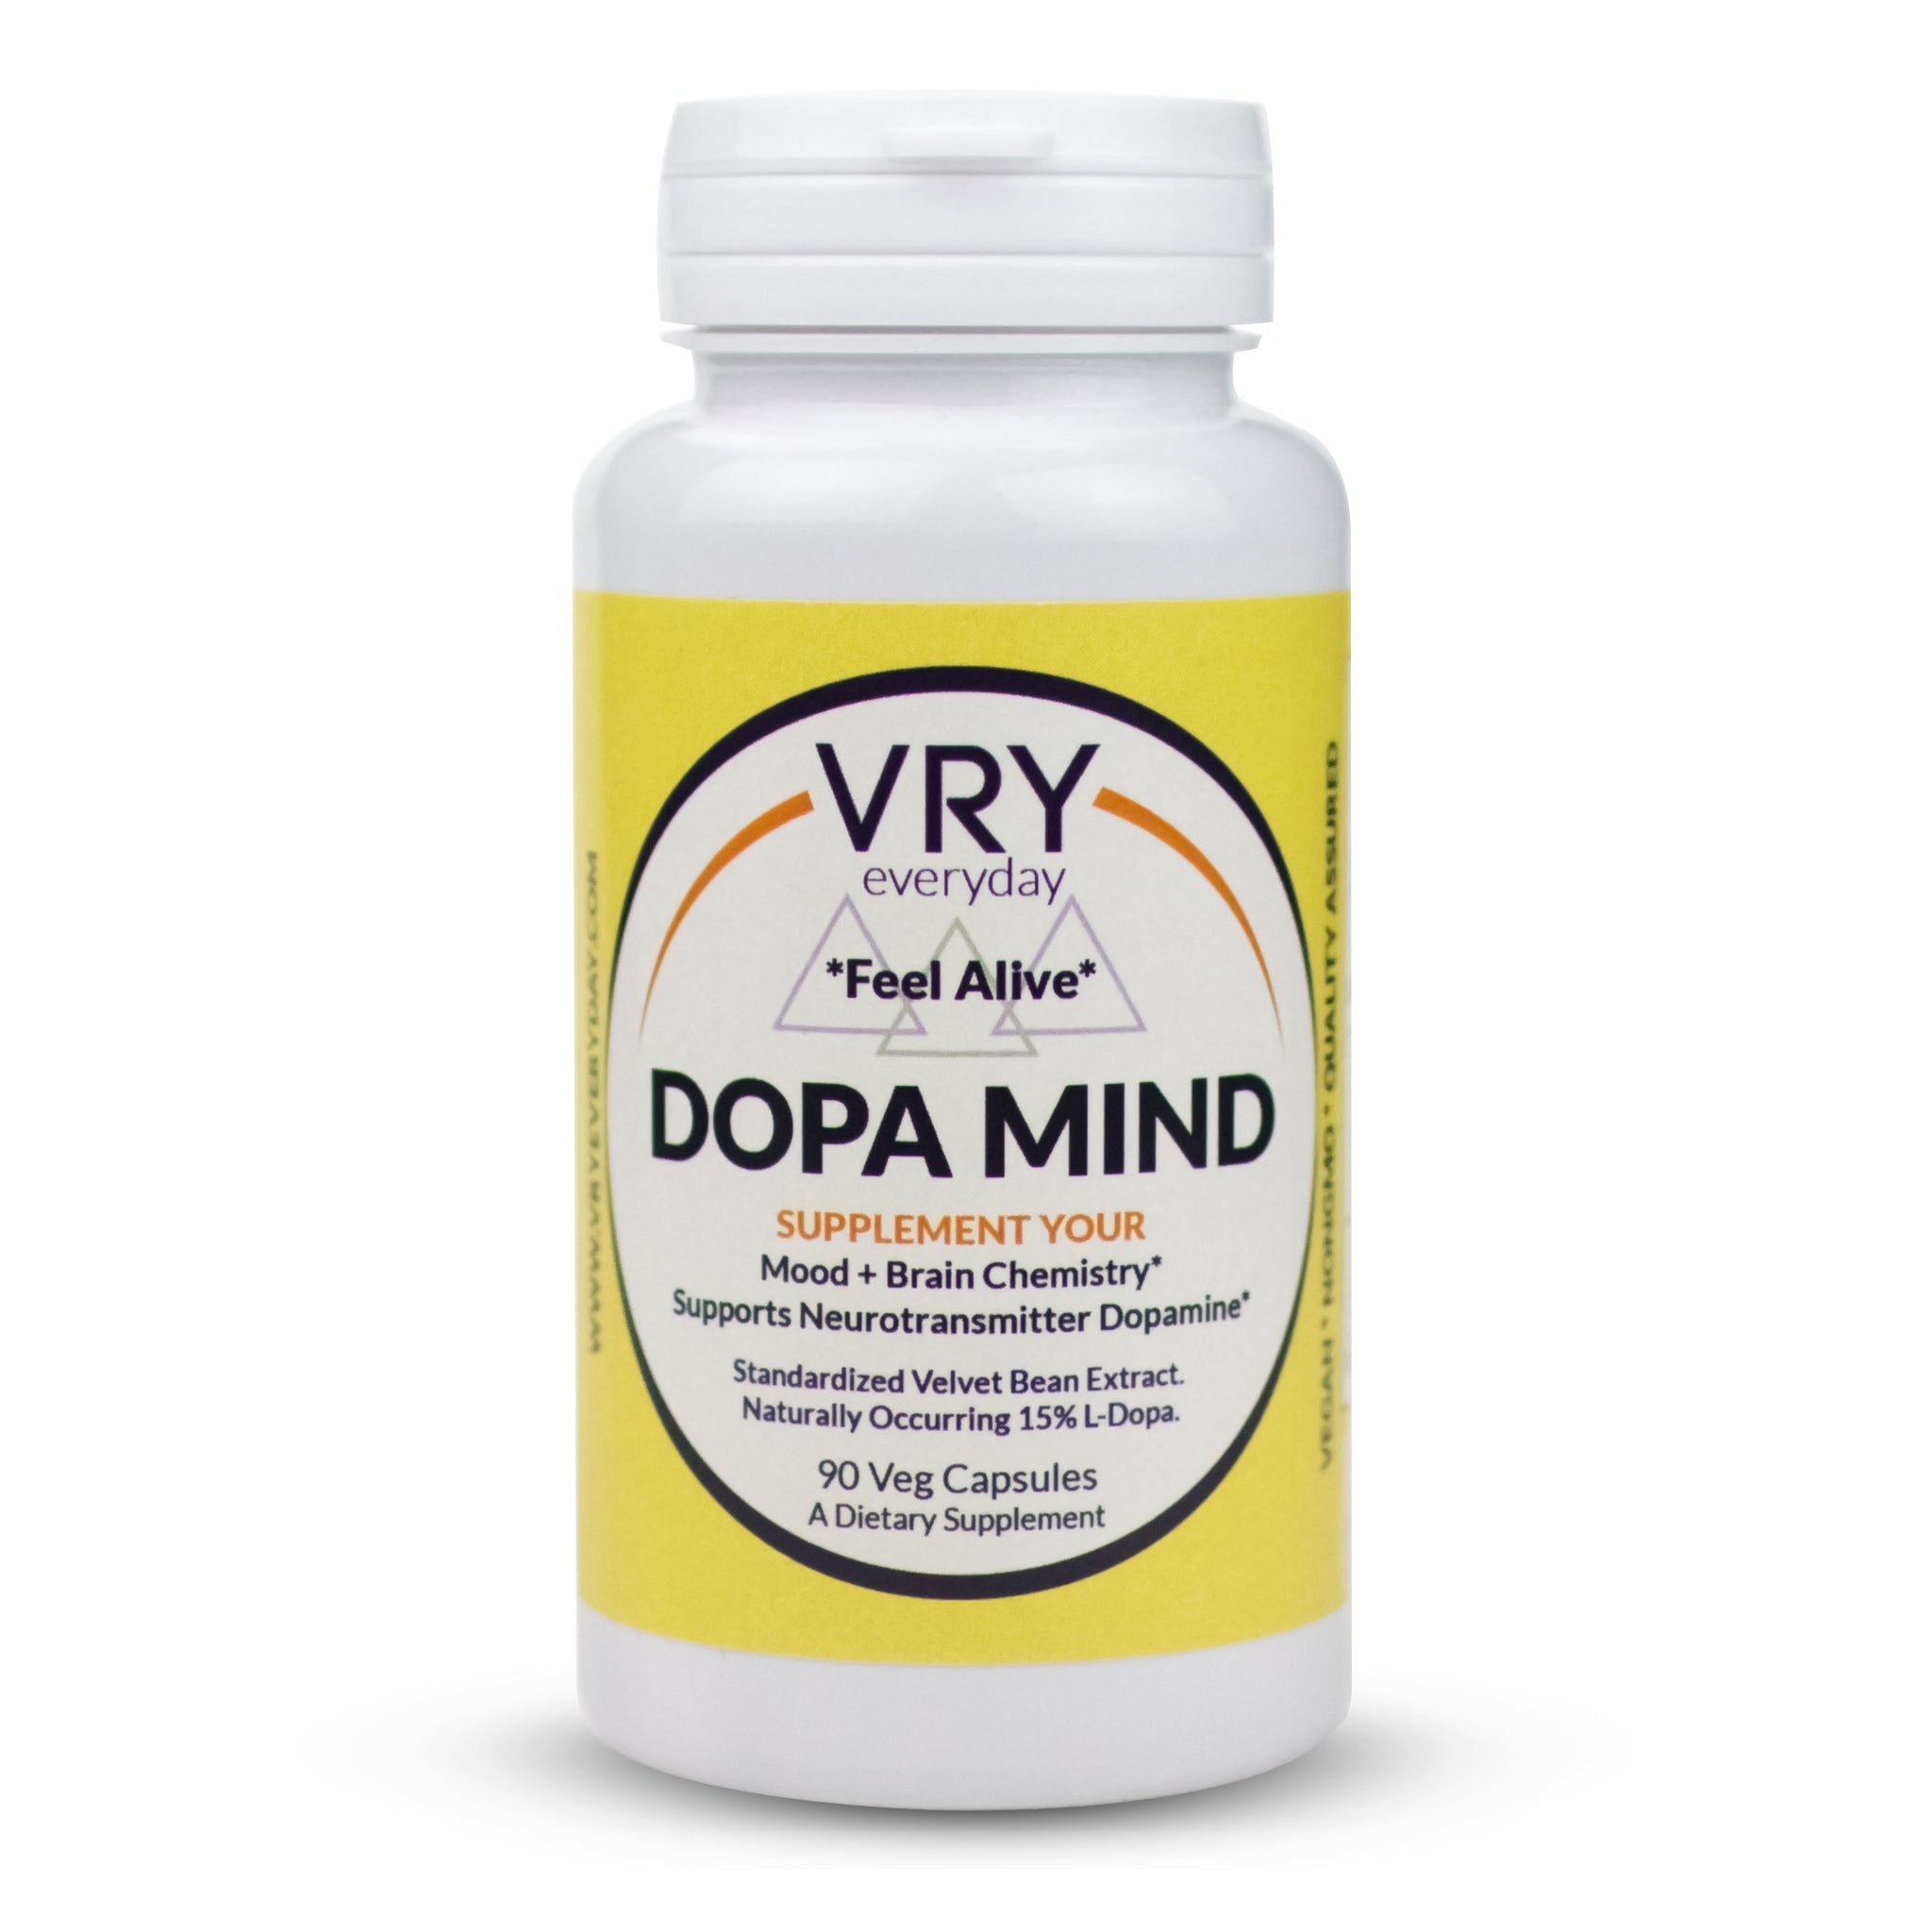 DOPA MIND - Feel Alive